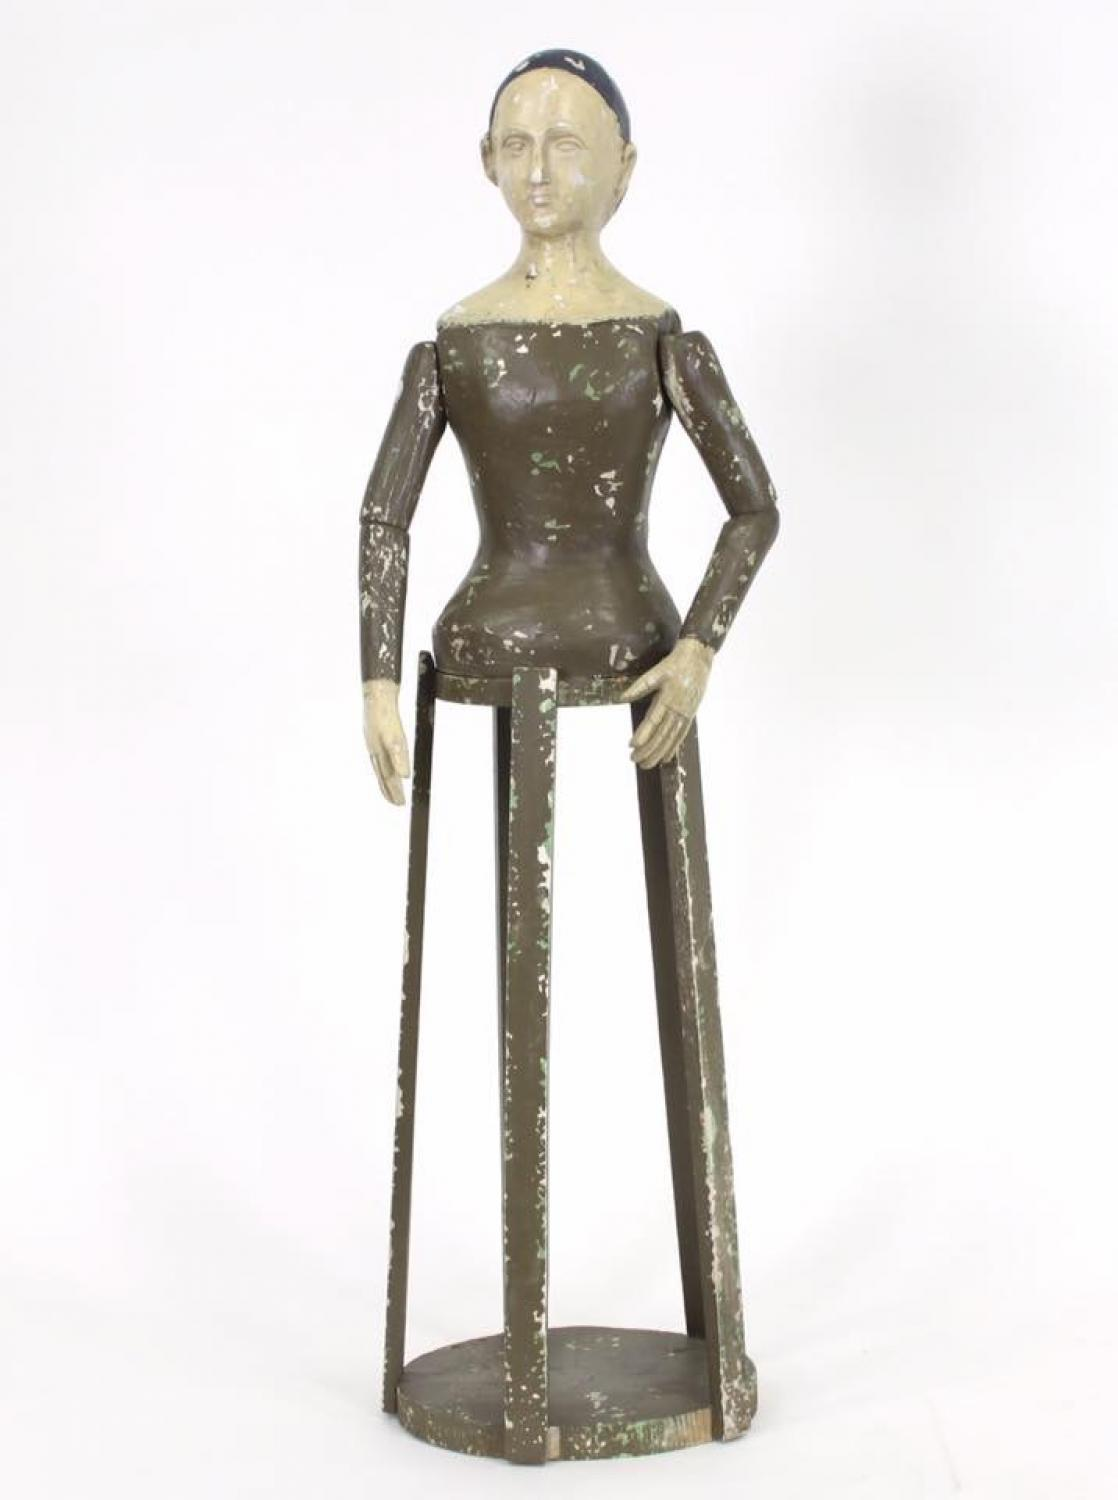 Painted articulated mannequin